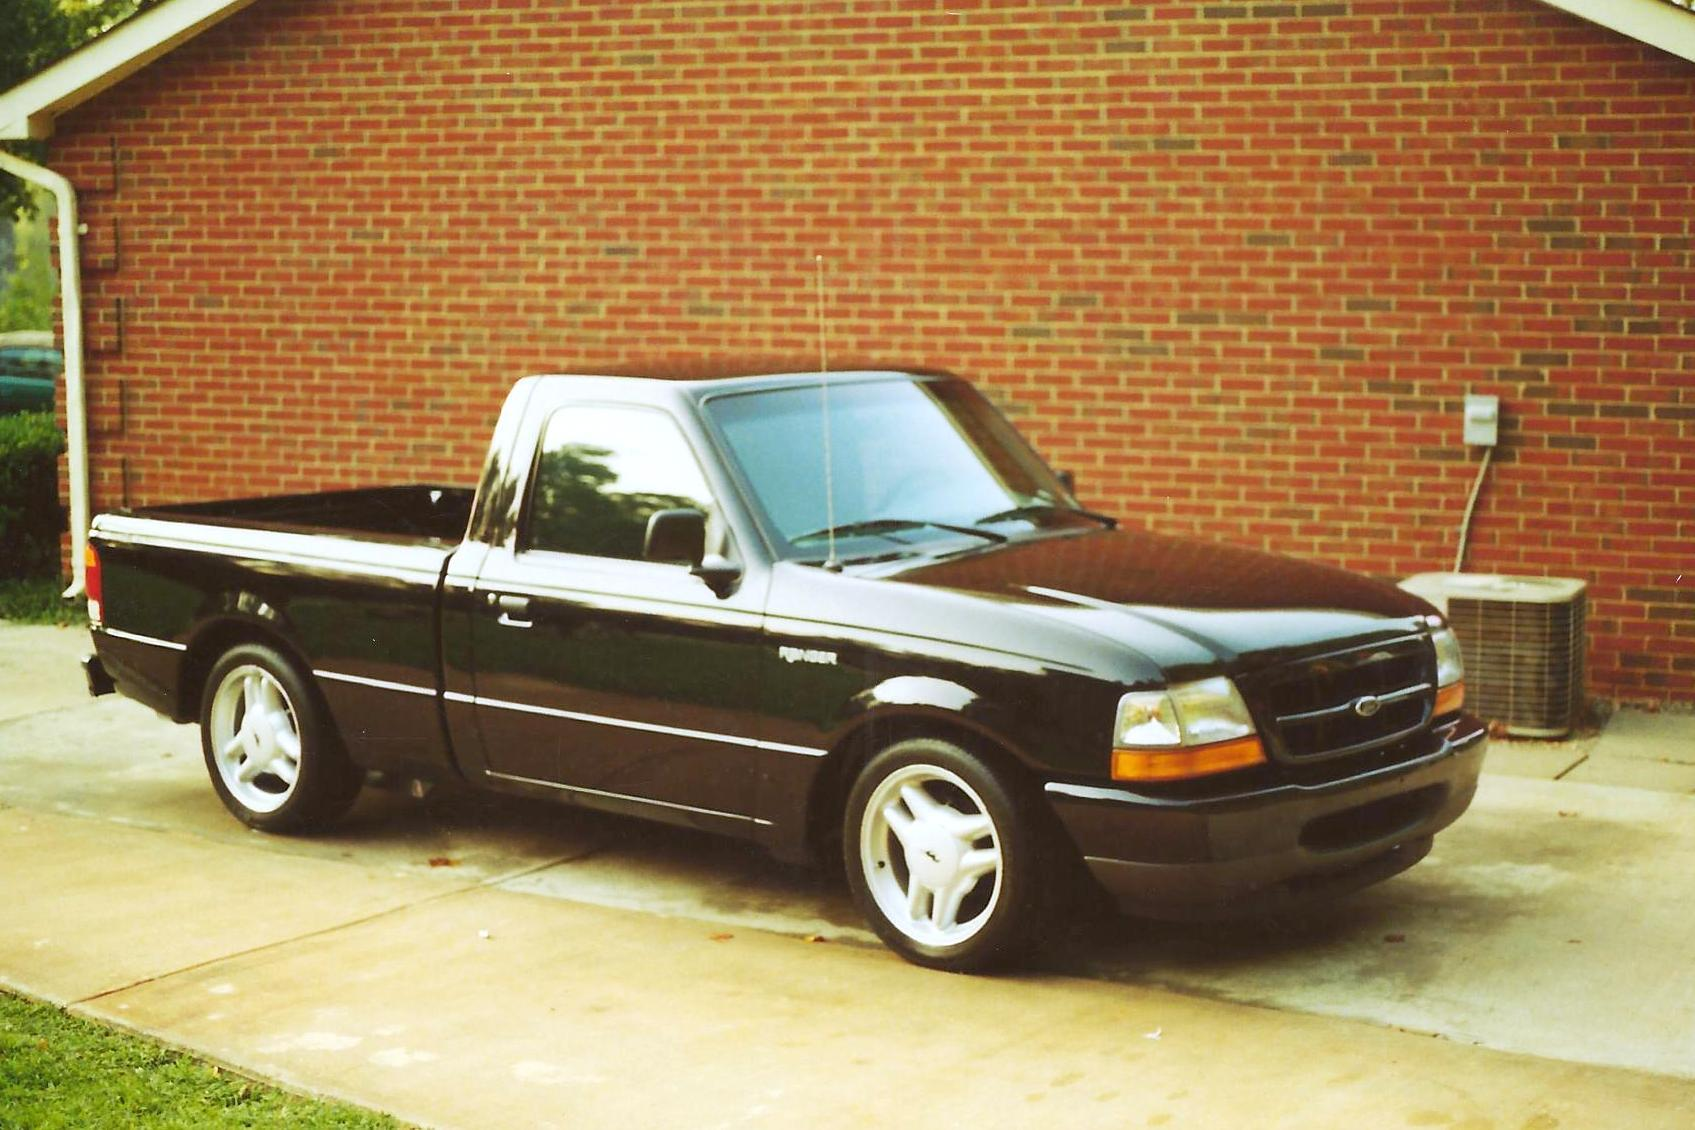 REdVENGER96 1998 Ford Ranger Regular CabShort Bed Specs, Photos, Modification Info at CarDomain